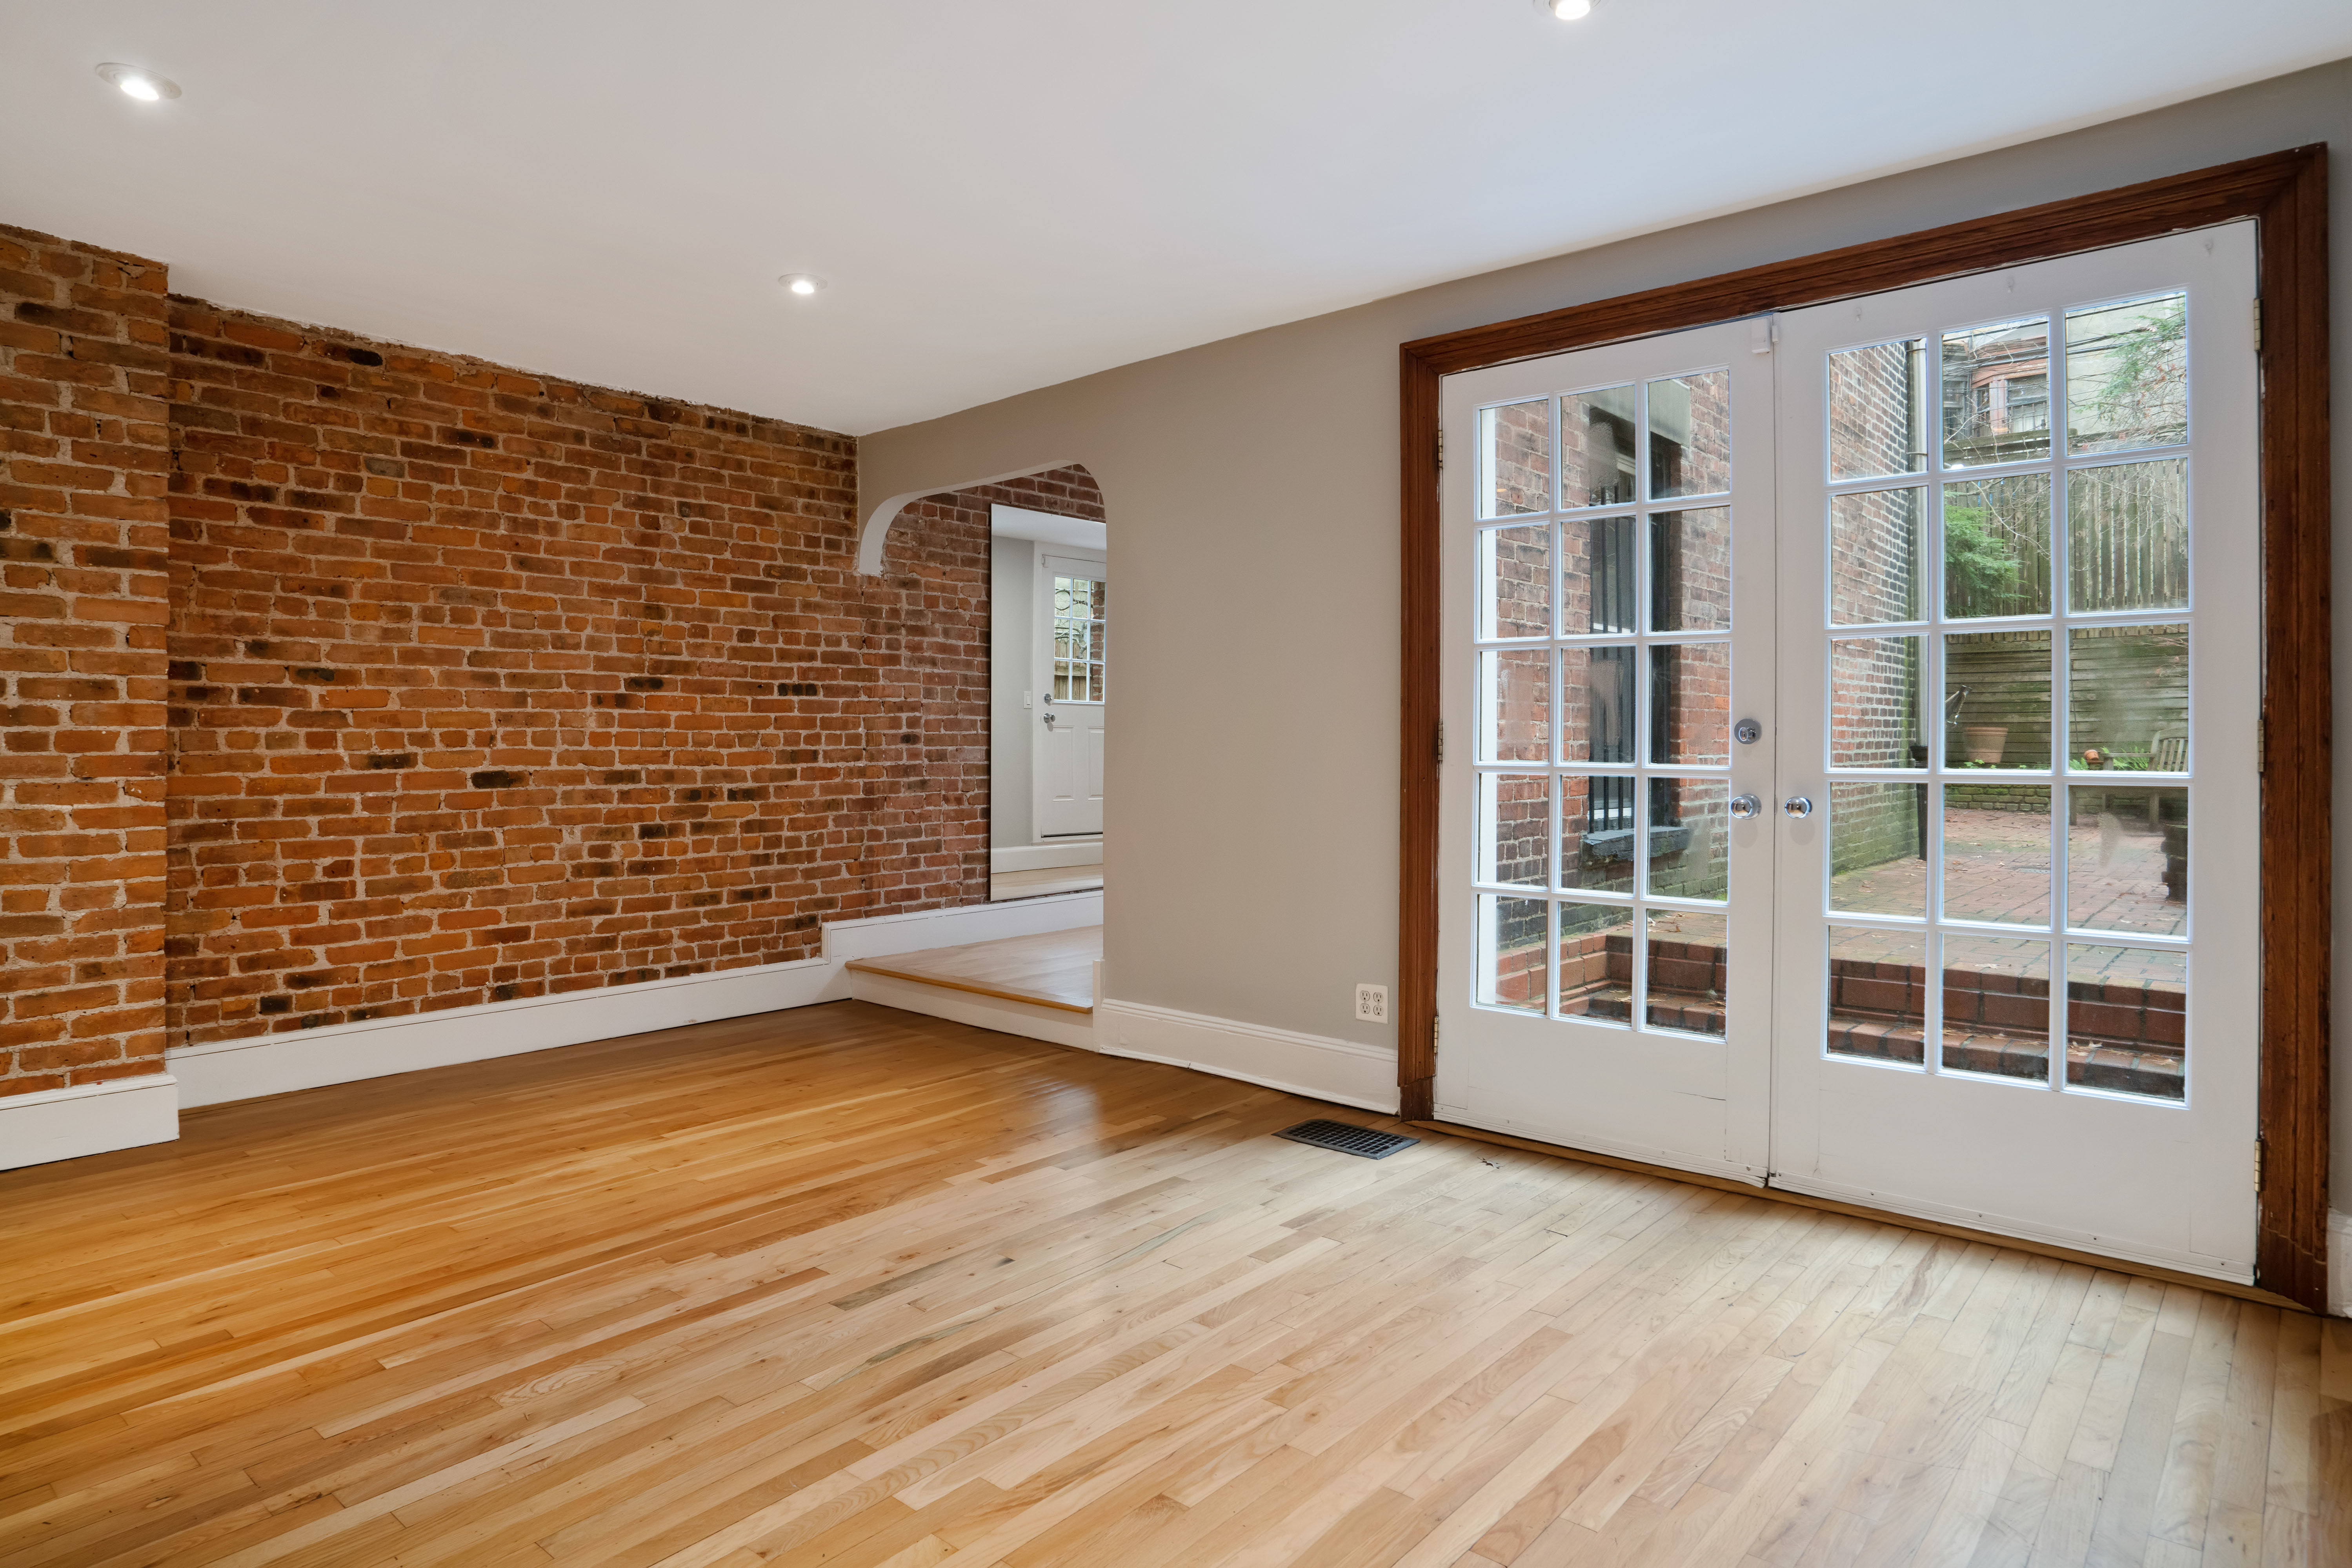 594 2nd St Photo 15 - BROWNSTONER-LISTING-47512a55ccfbbeb19b0a8fb315f62163